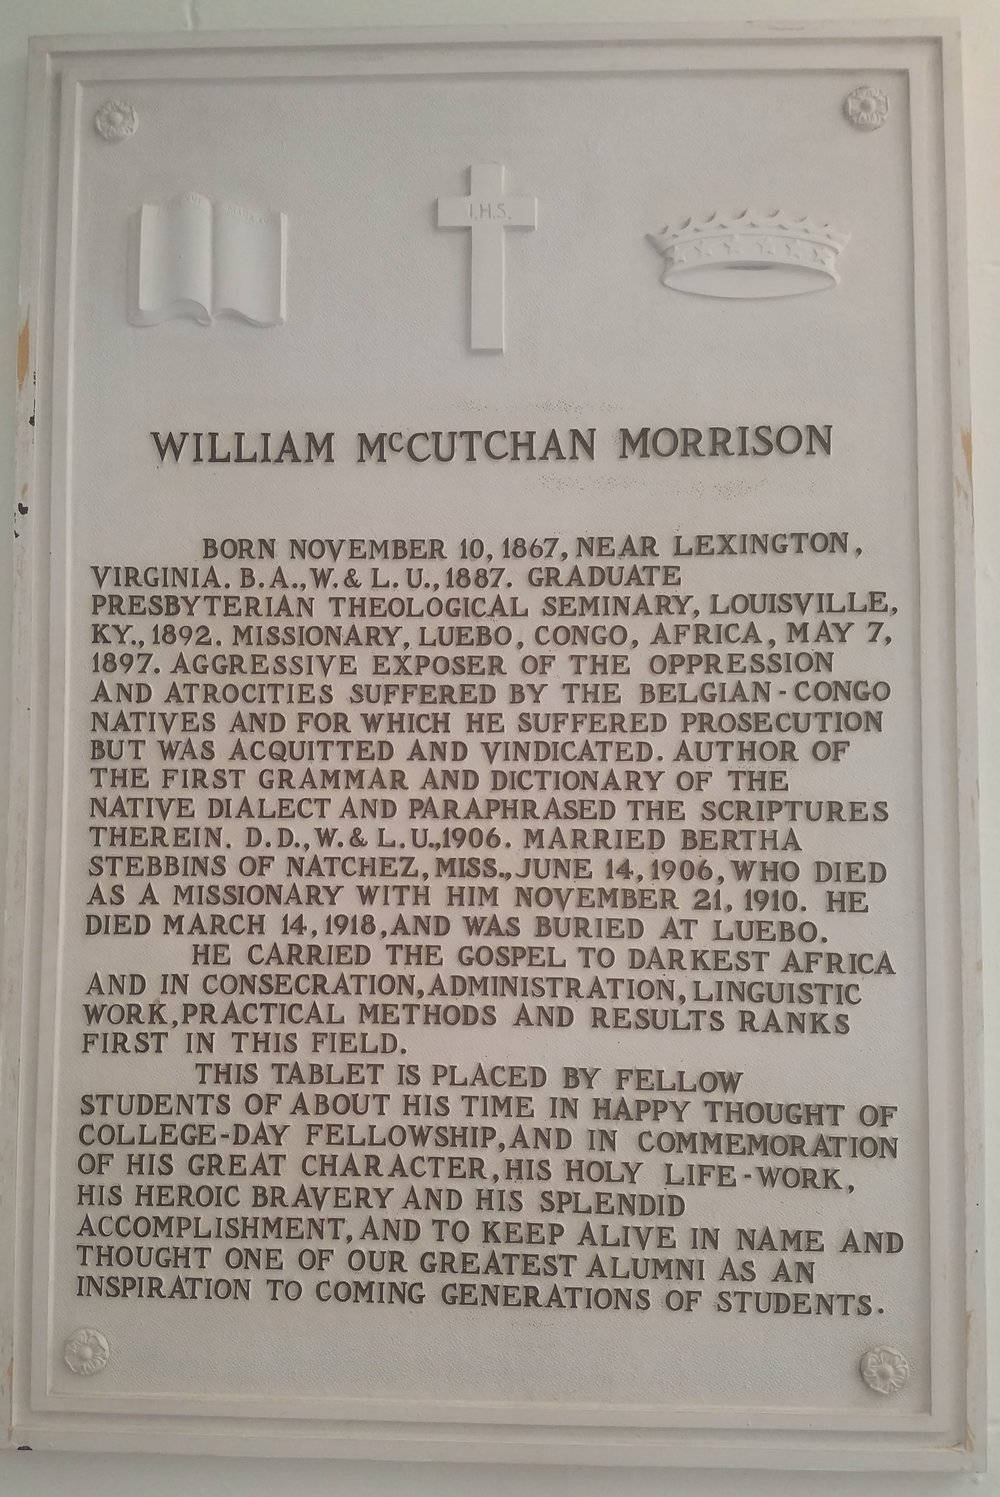 Memorial to William McCutchan Morrison in the Lee Chapel, Lexington, Virginia. Photograph by R. Andrew Myers.